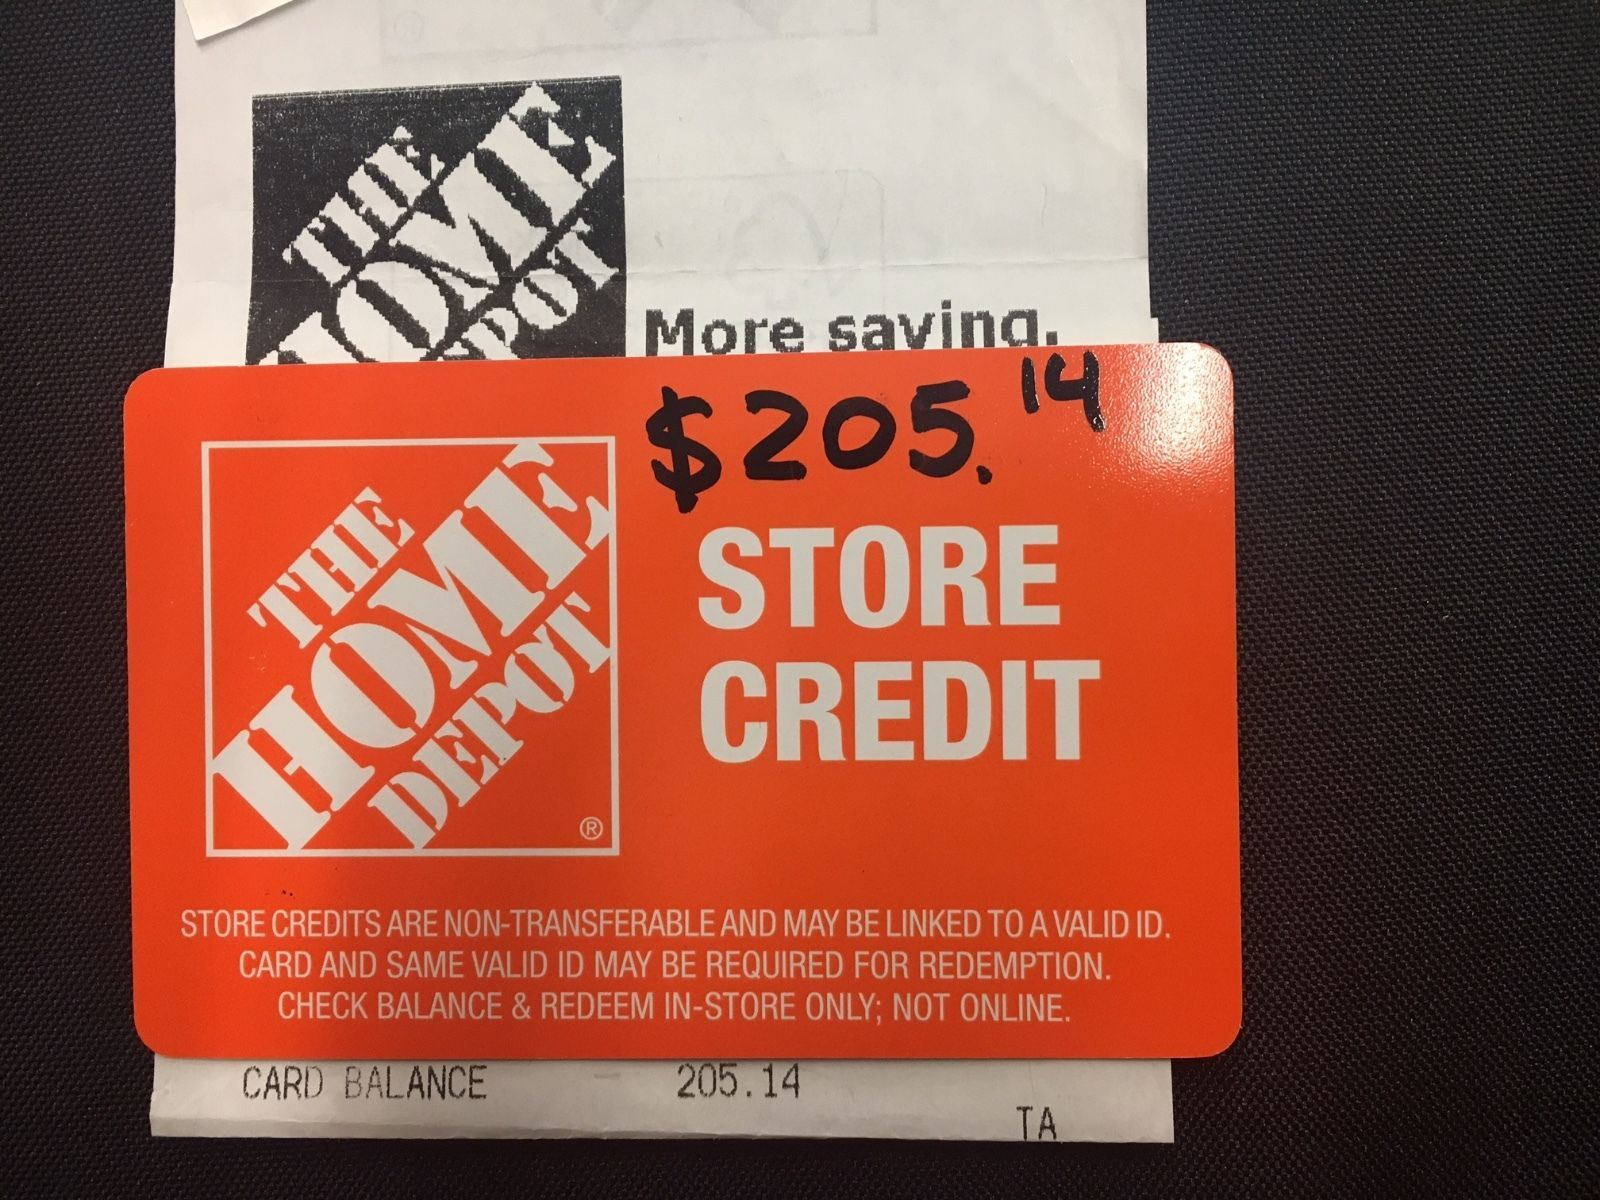 Coupons GiftCards 205.14 Home Depot Store Credit Gift